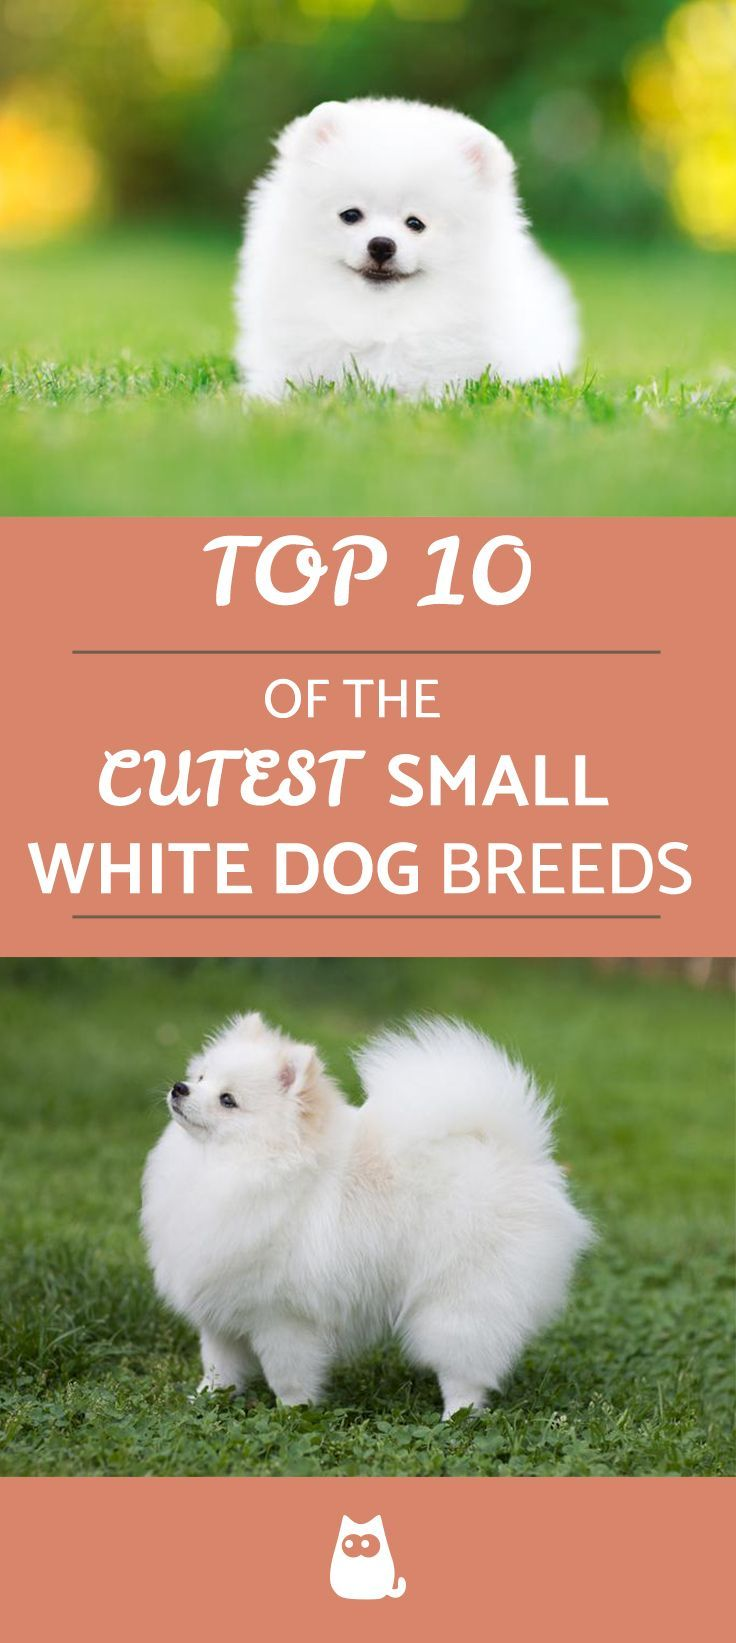 Is It A Cloud Or A Dog The Cutest List With Pictures White Dog Breeds Dog Breeds White Dogs